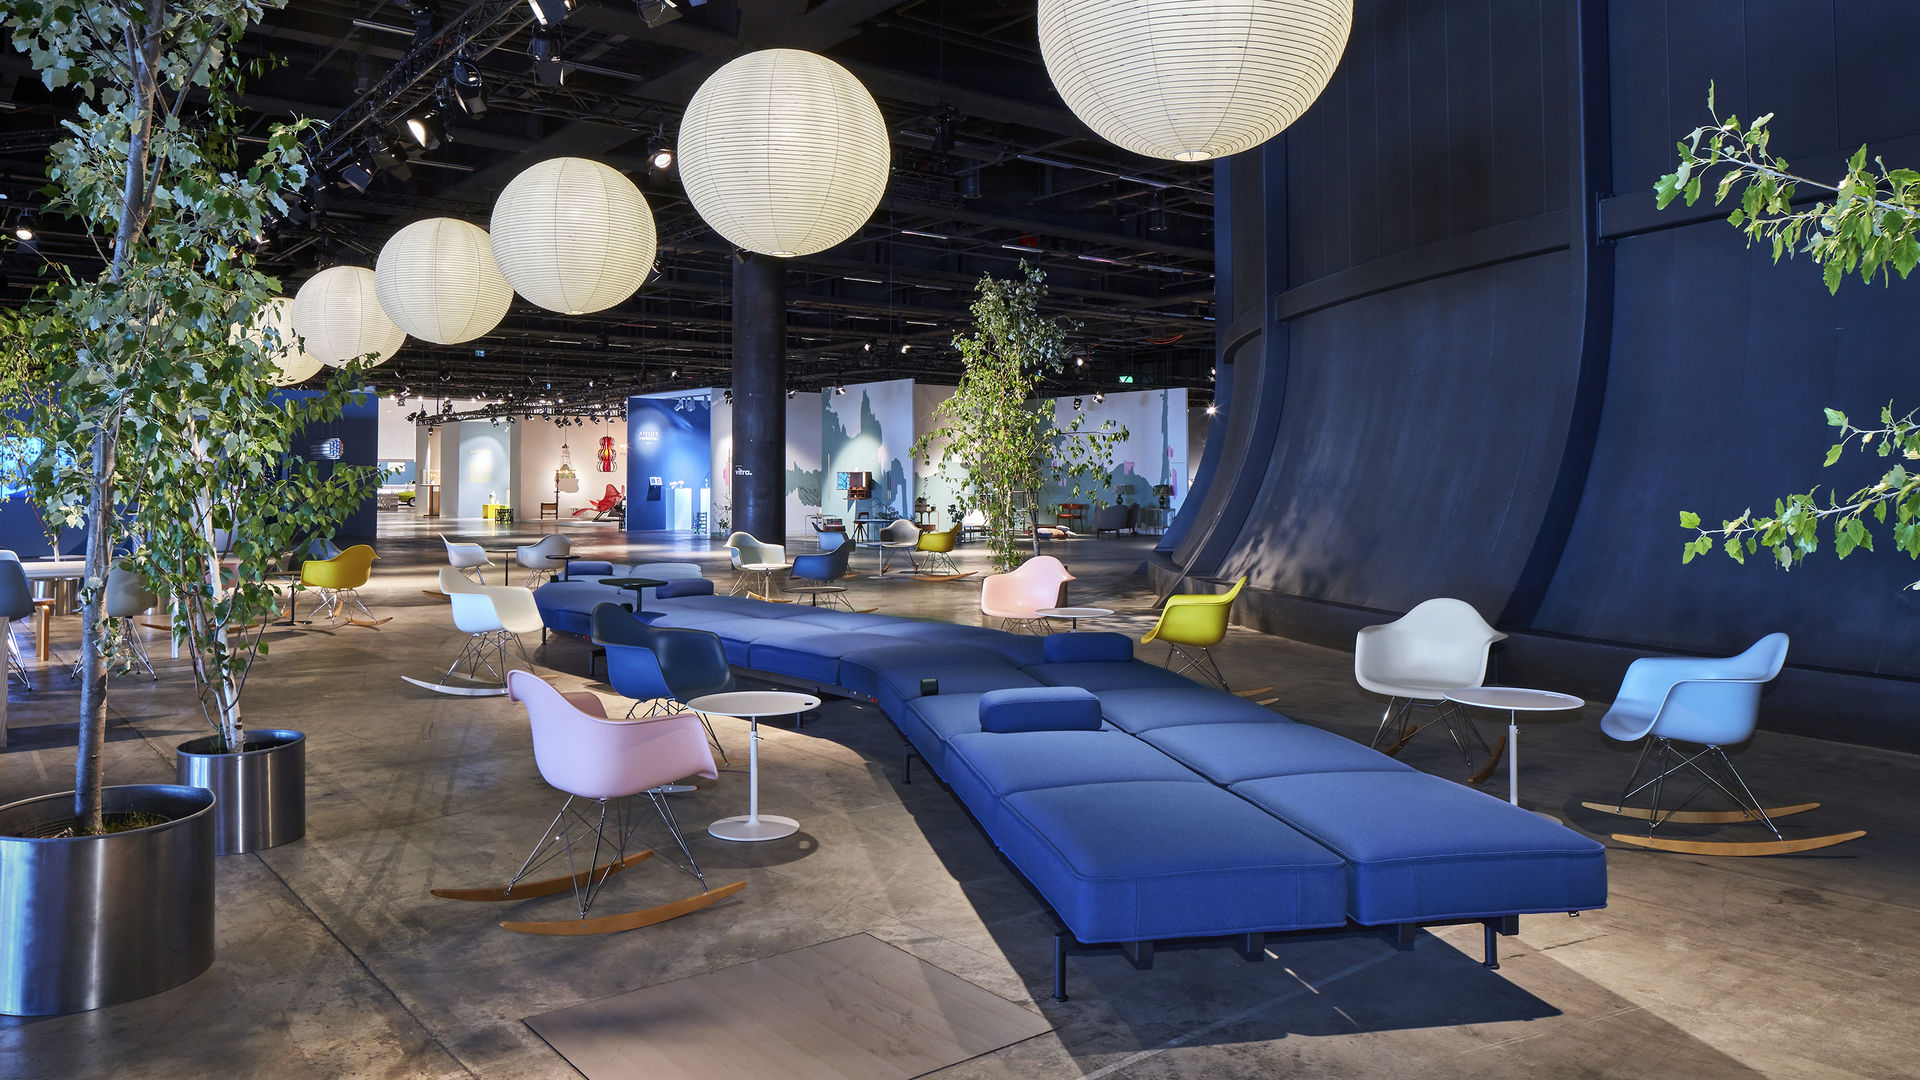 Design_Miami_2019_Lounge_01_web_16-9